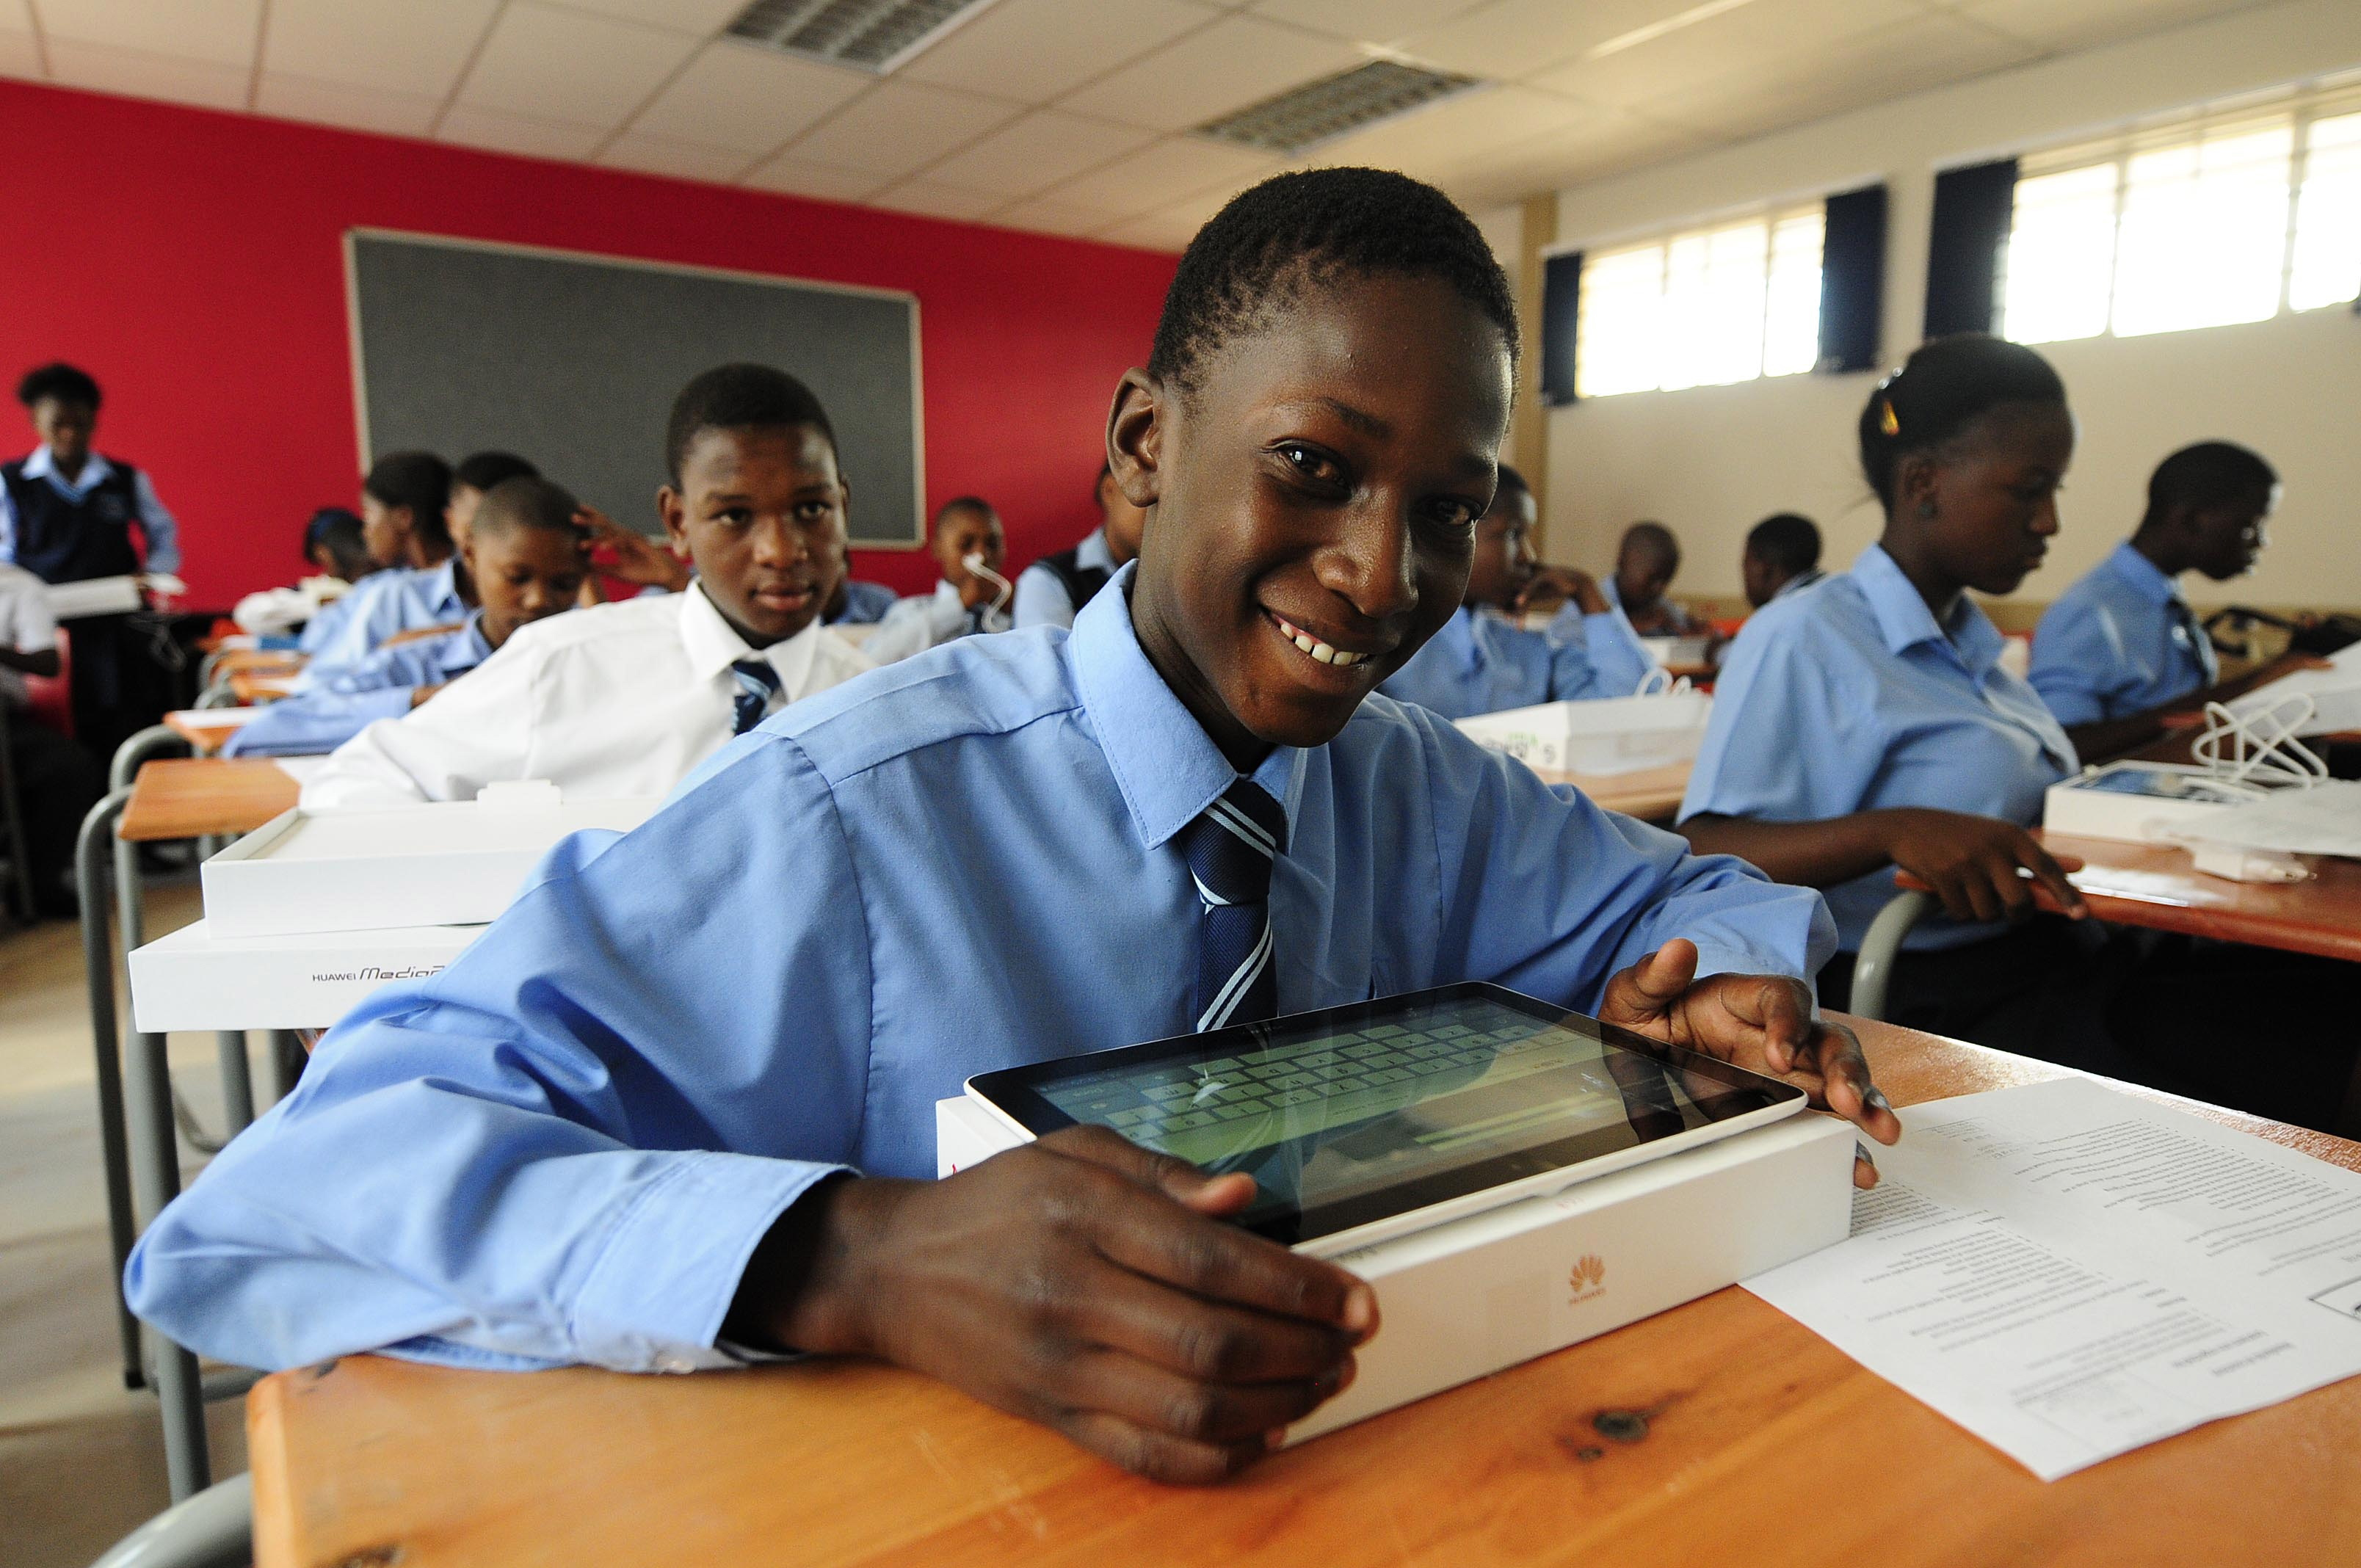 Image: Pupils work on their tablets on at Boitumelong Secondary School in Tembisa in Johannesburg, South Africa. (Photo by Thulani Mbele/Sowetan/Gallo Images/Getty Images)